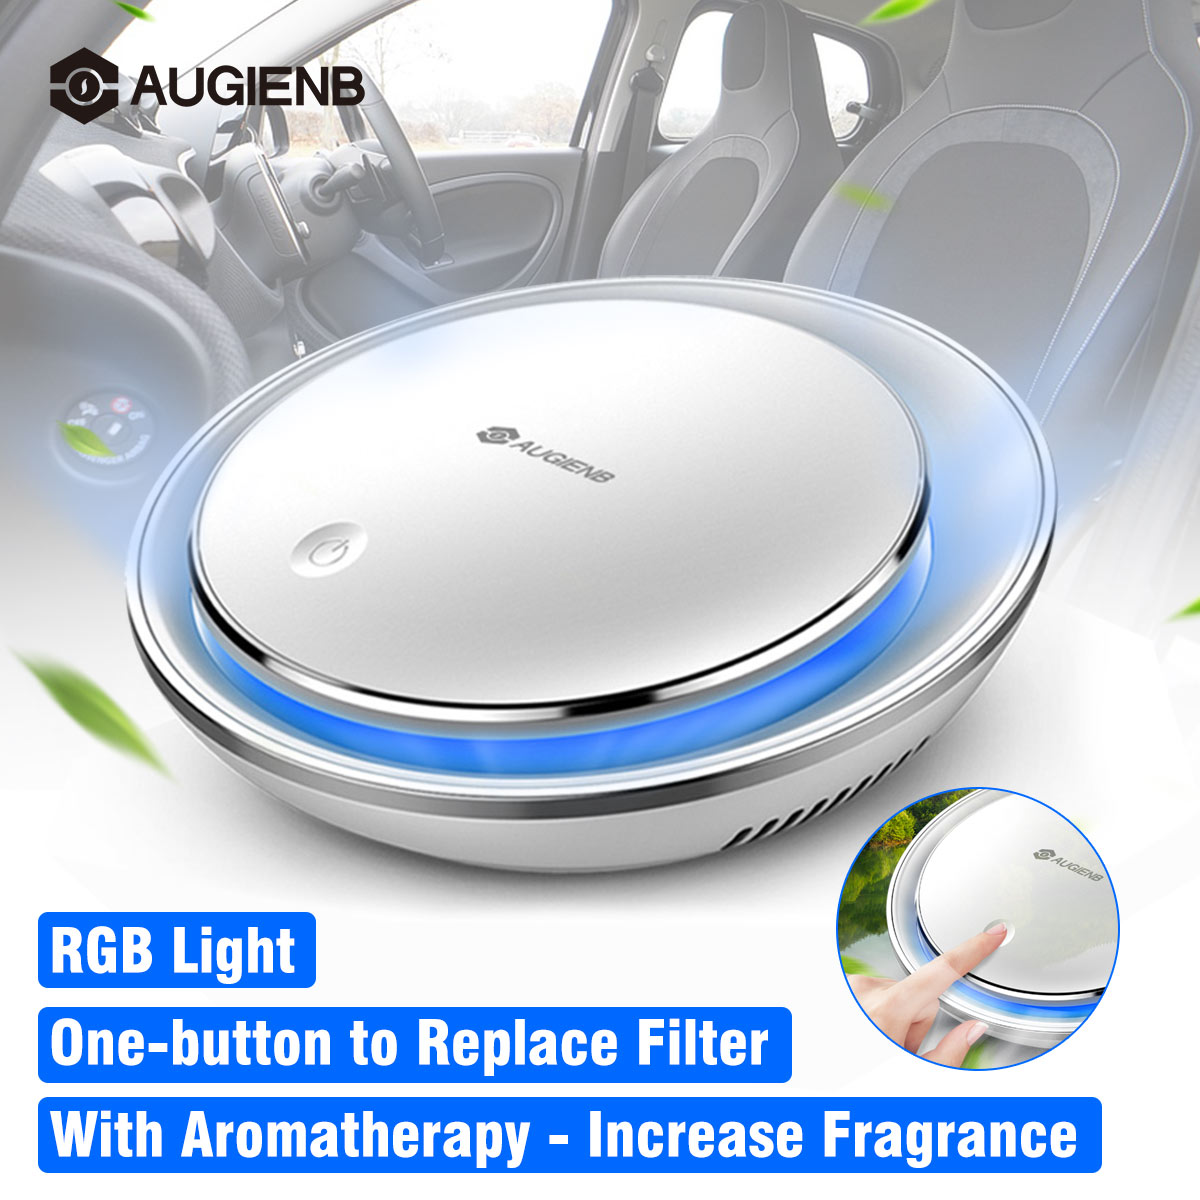 AUGIENB Air Purifier With HEPA Filter Fresh Air Anion Car Air Purifier Air Cleaner For Car Home Office Aromatherapy RGB Light